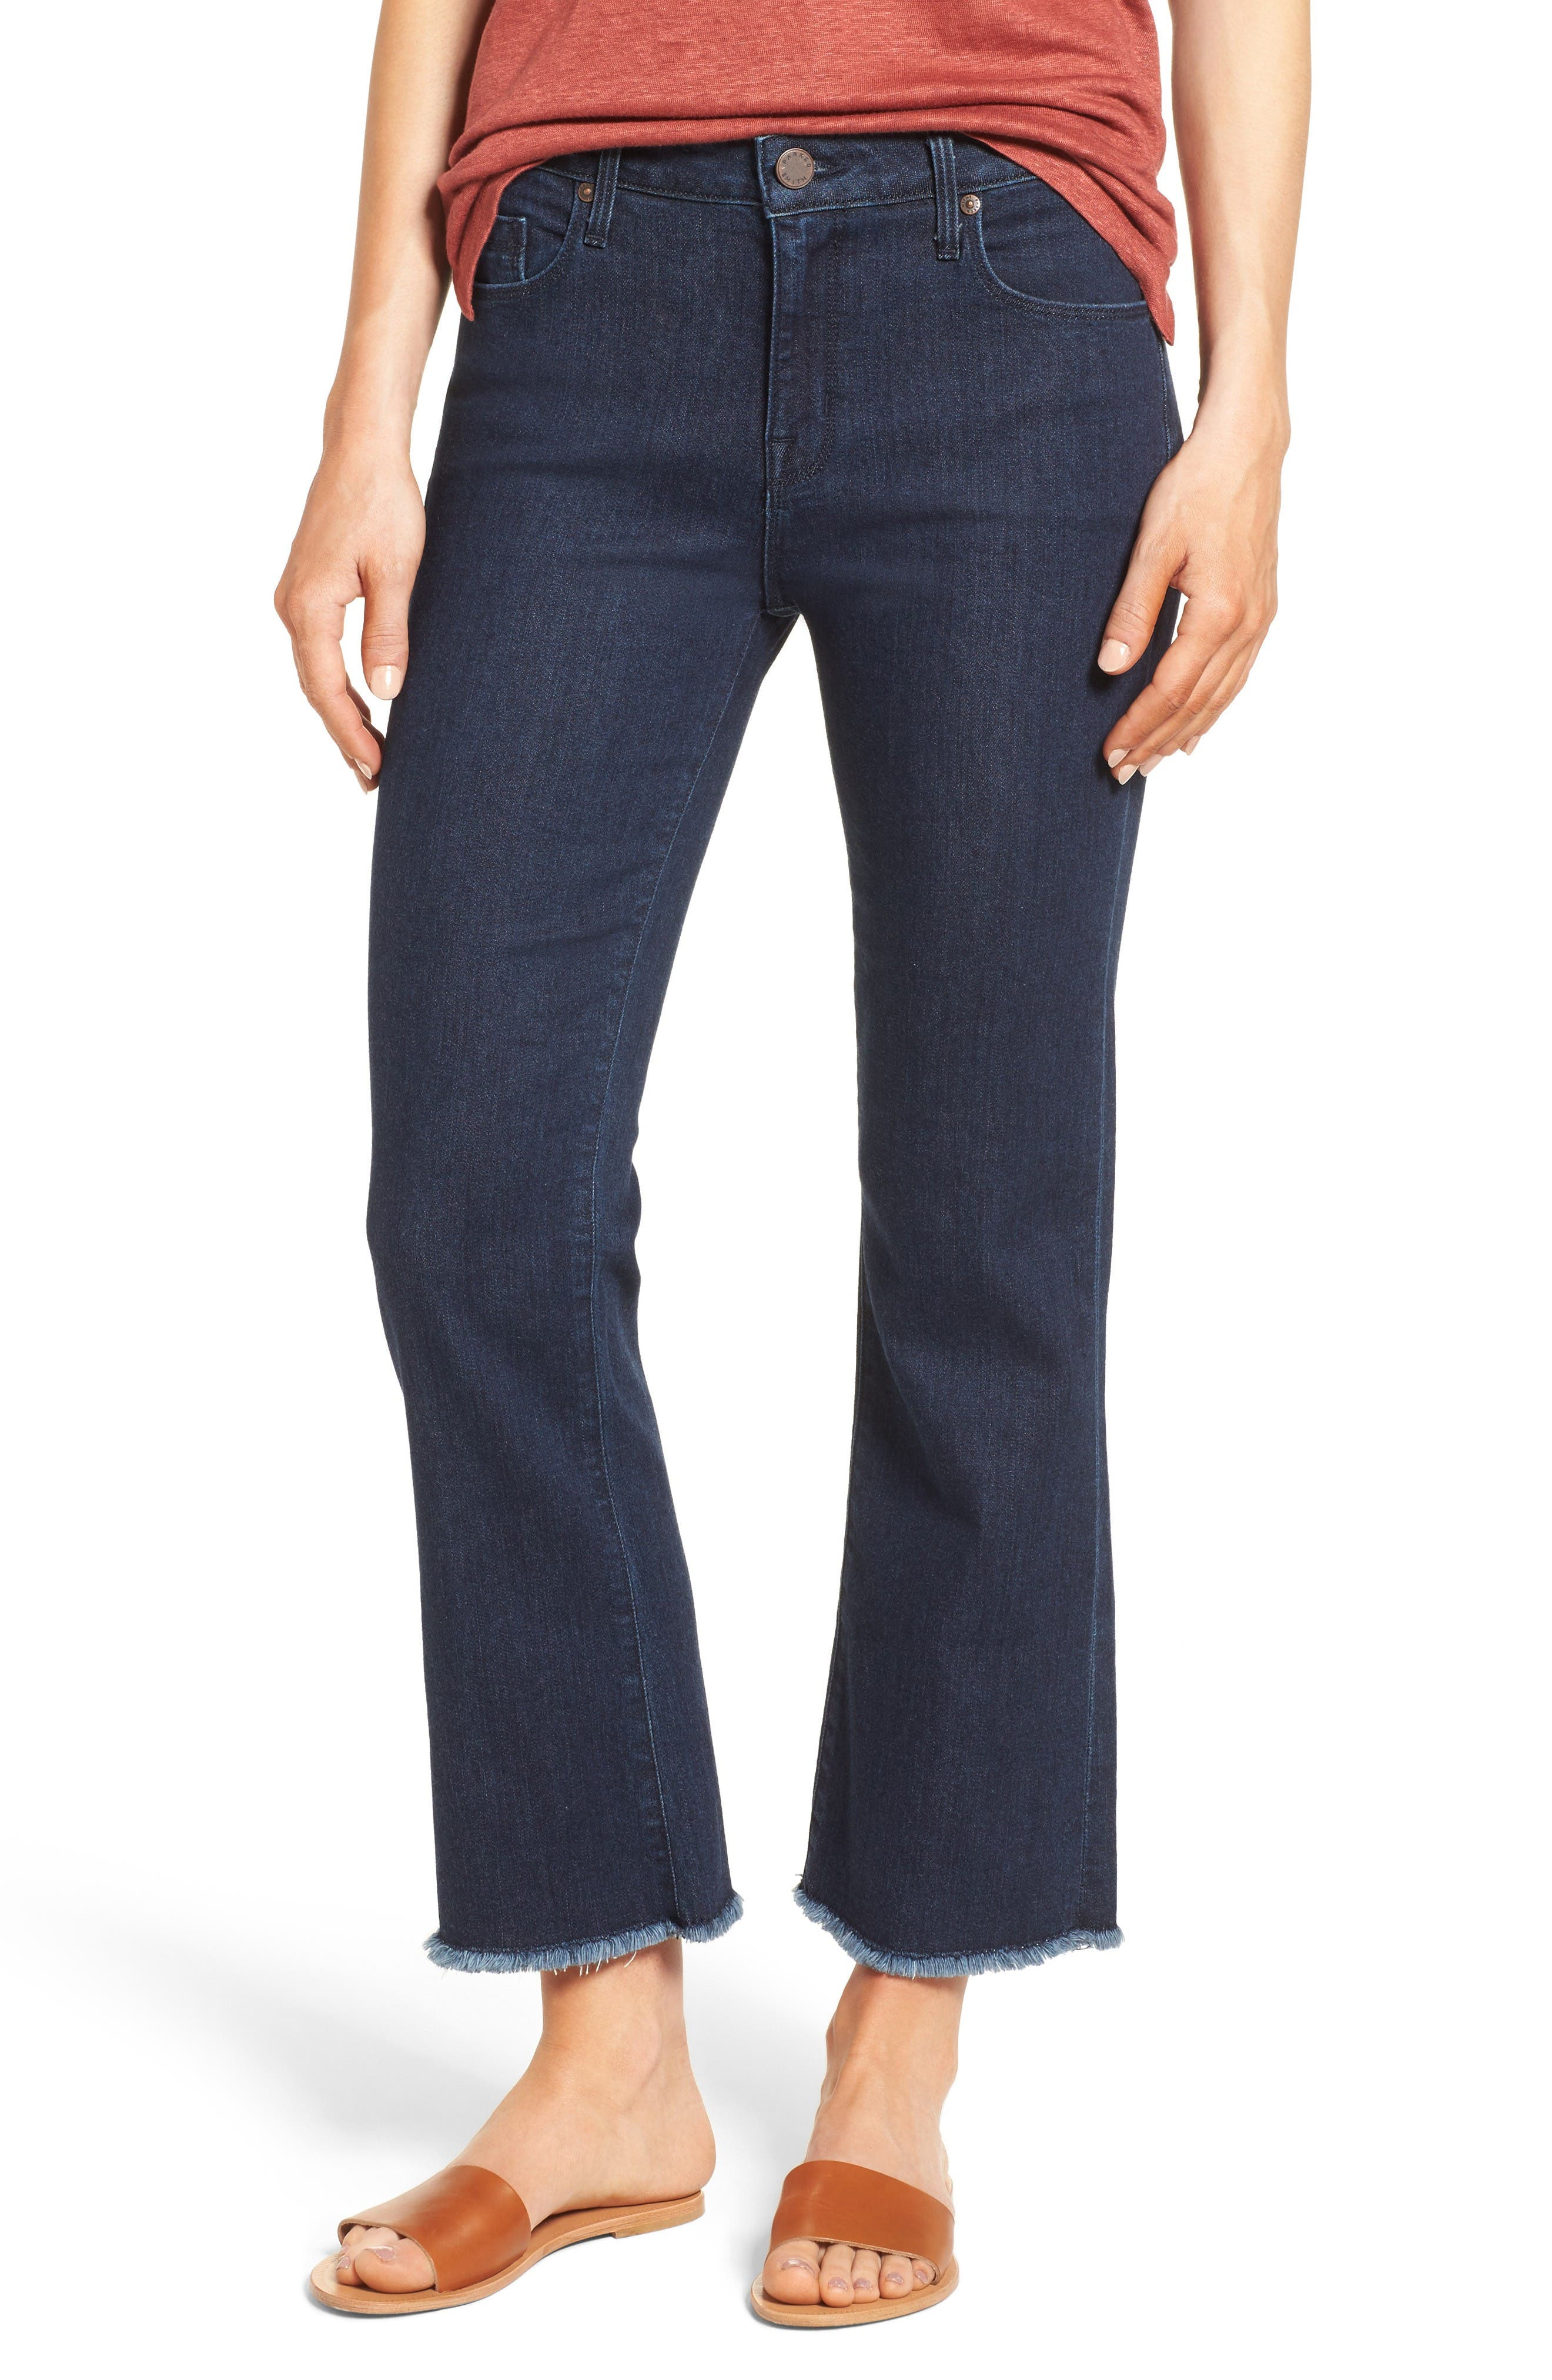 Alternate Image 1 Selected - PARKER SMITH Brynna Crop Flare Jeans (Baltic)